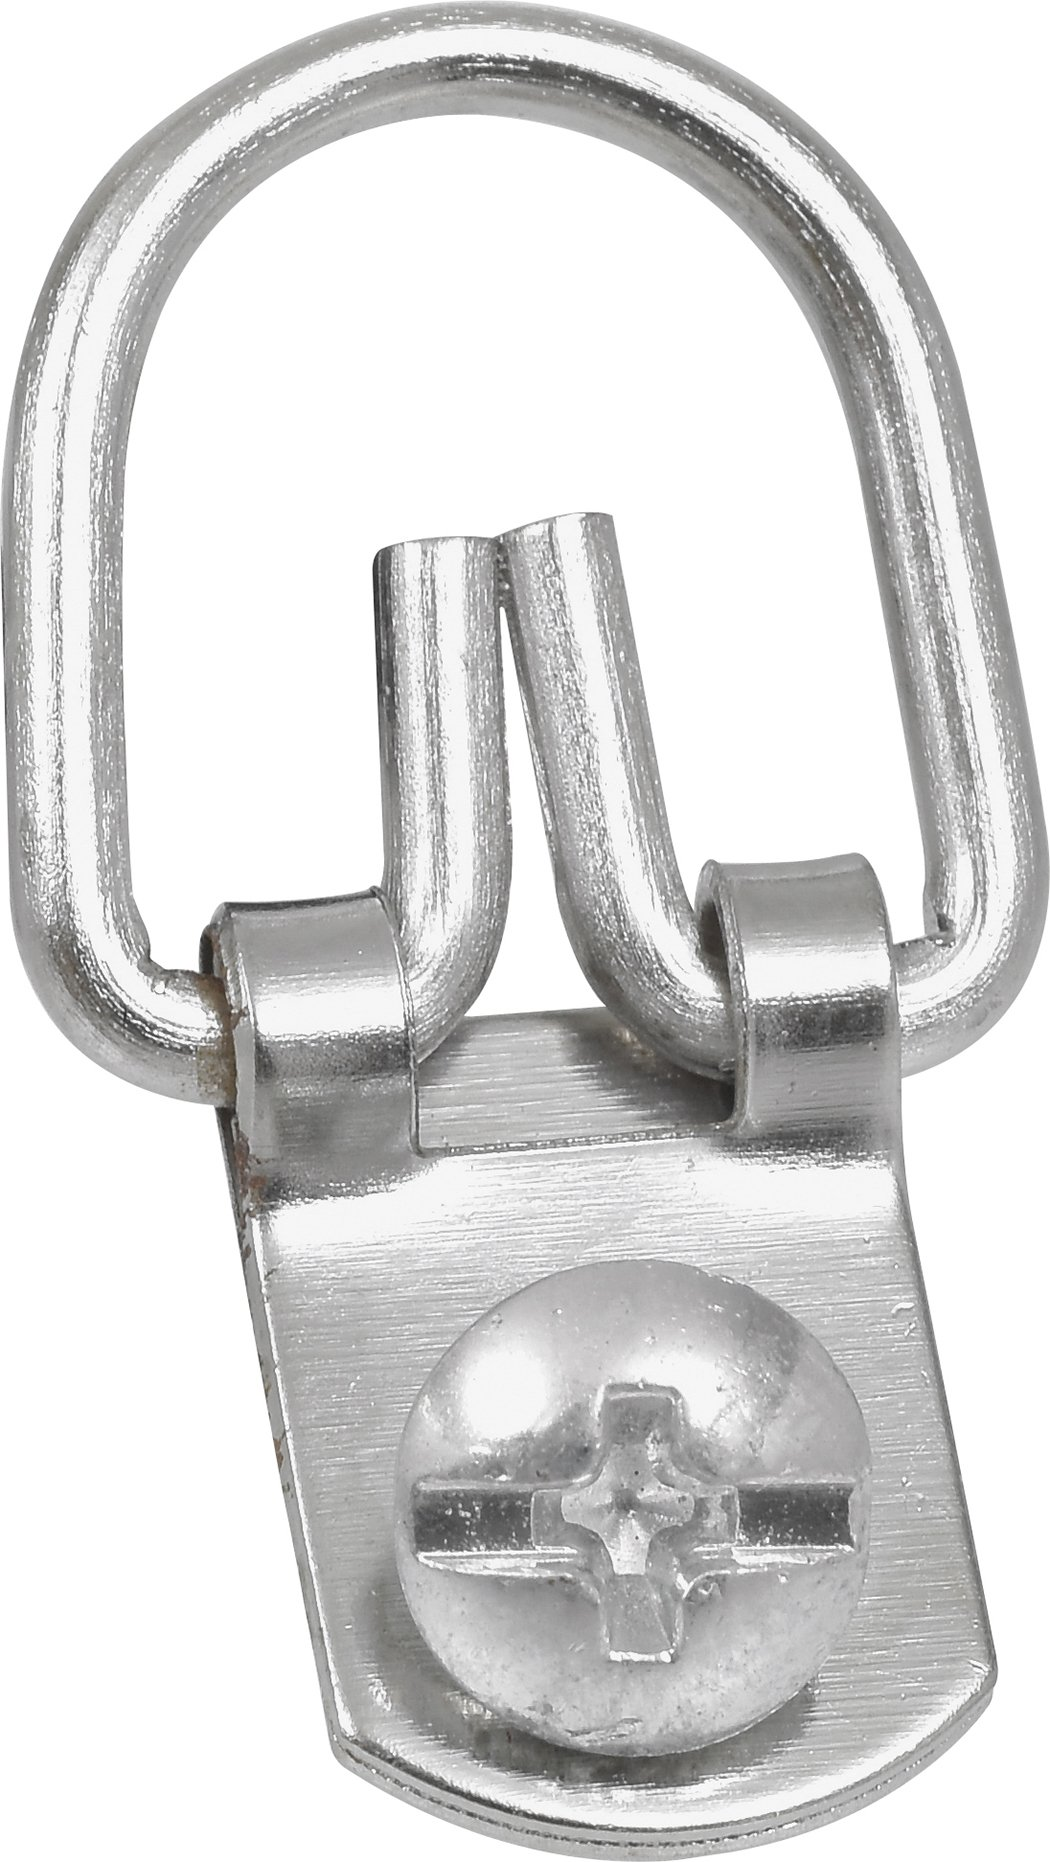 OOK by Hillman 533830 Large Steel D-Ring Hangers, 3 Count